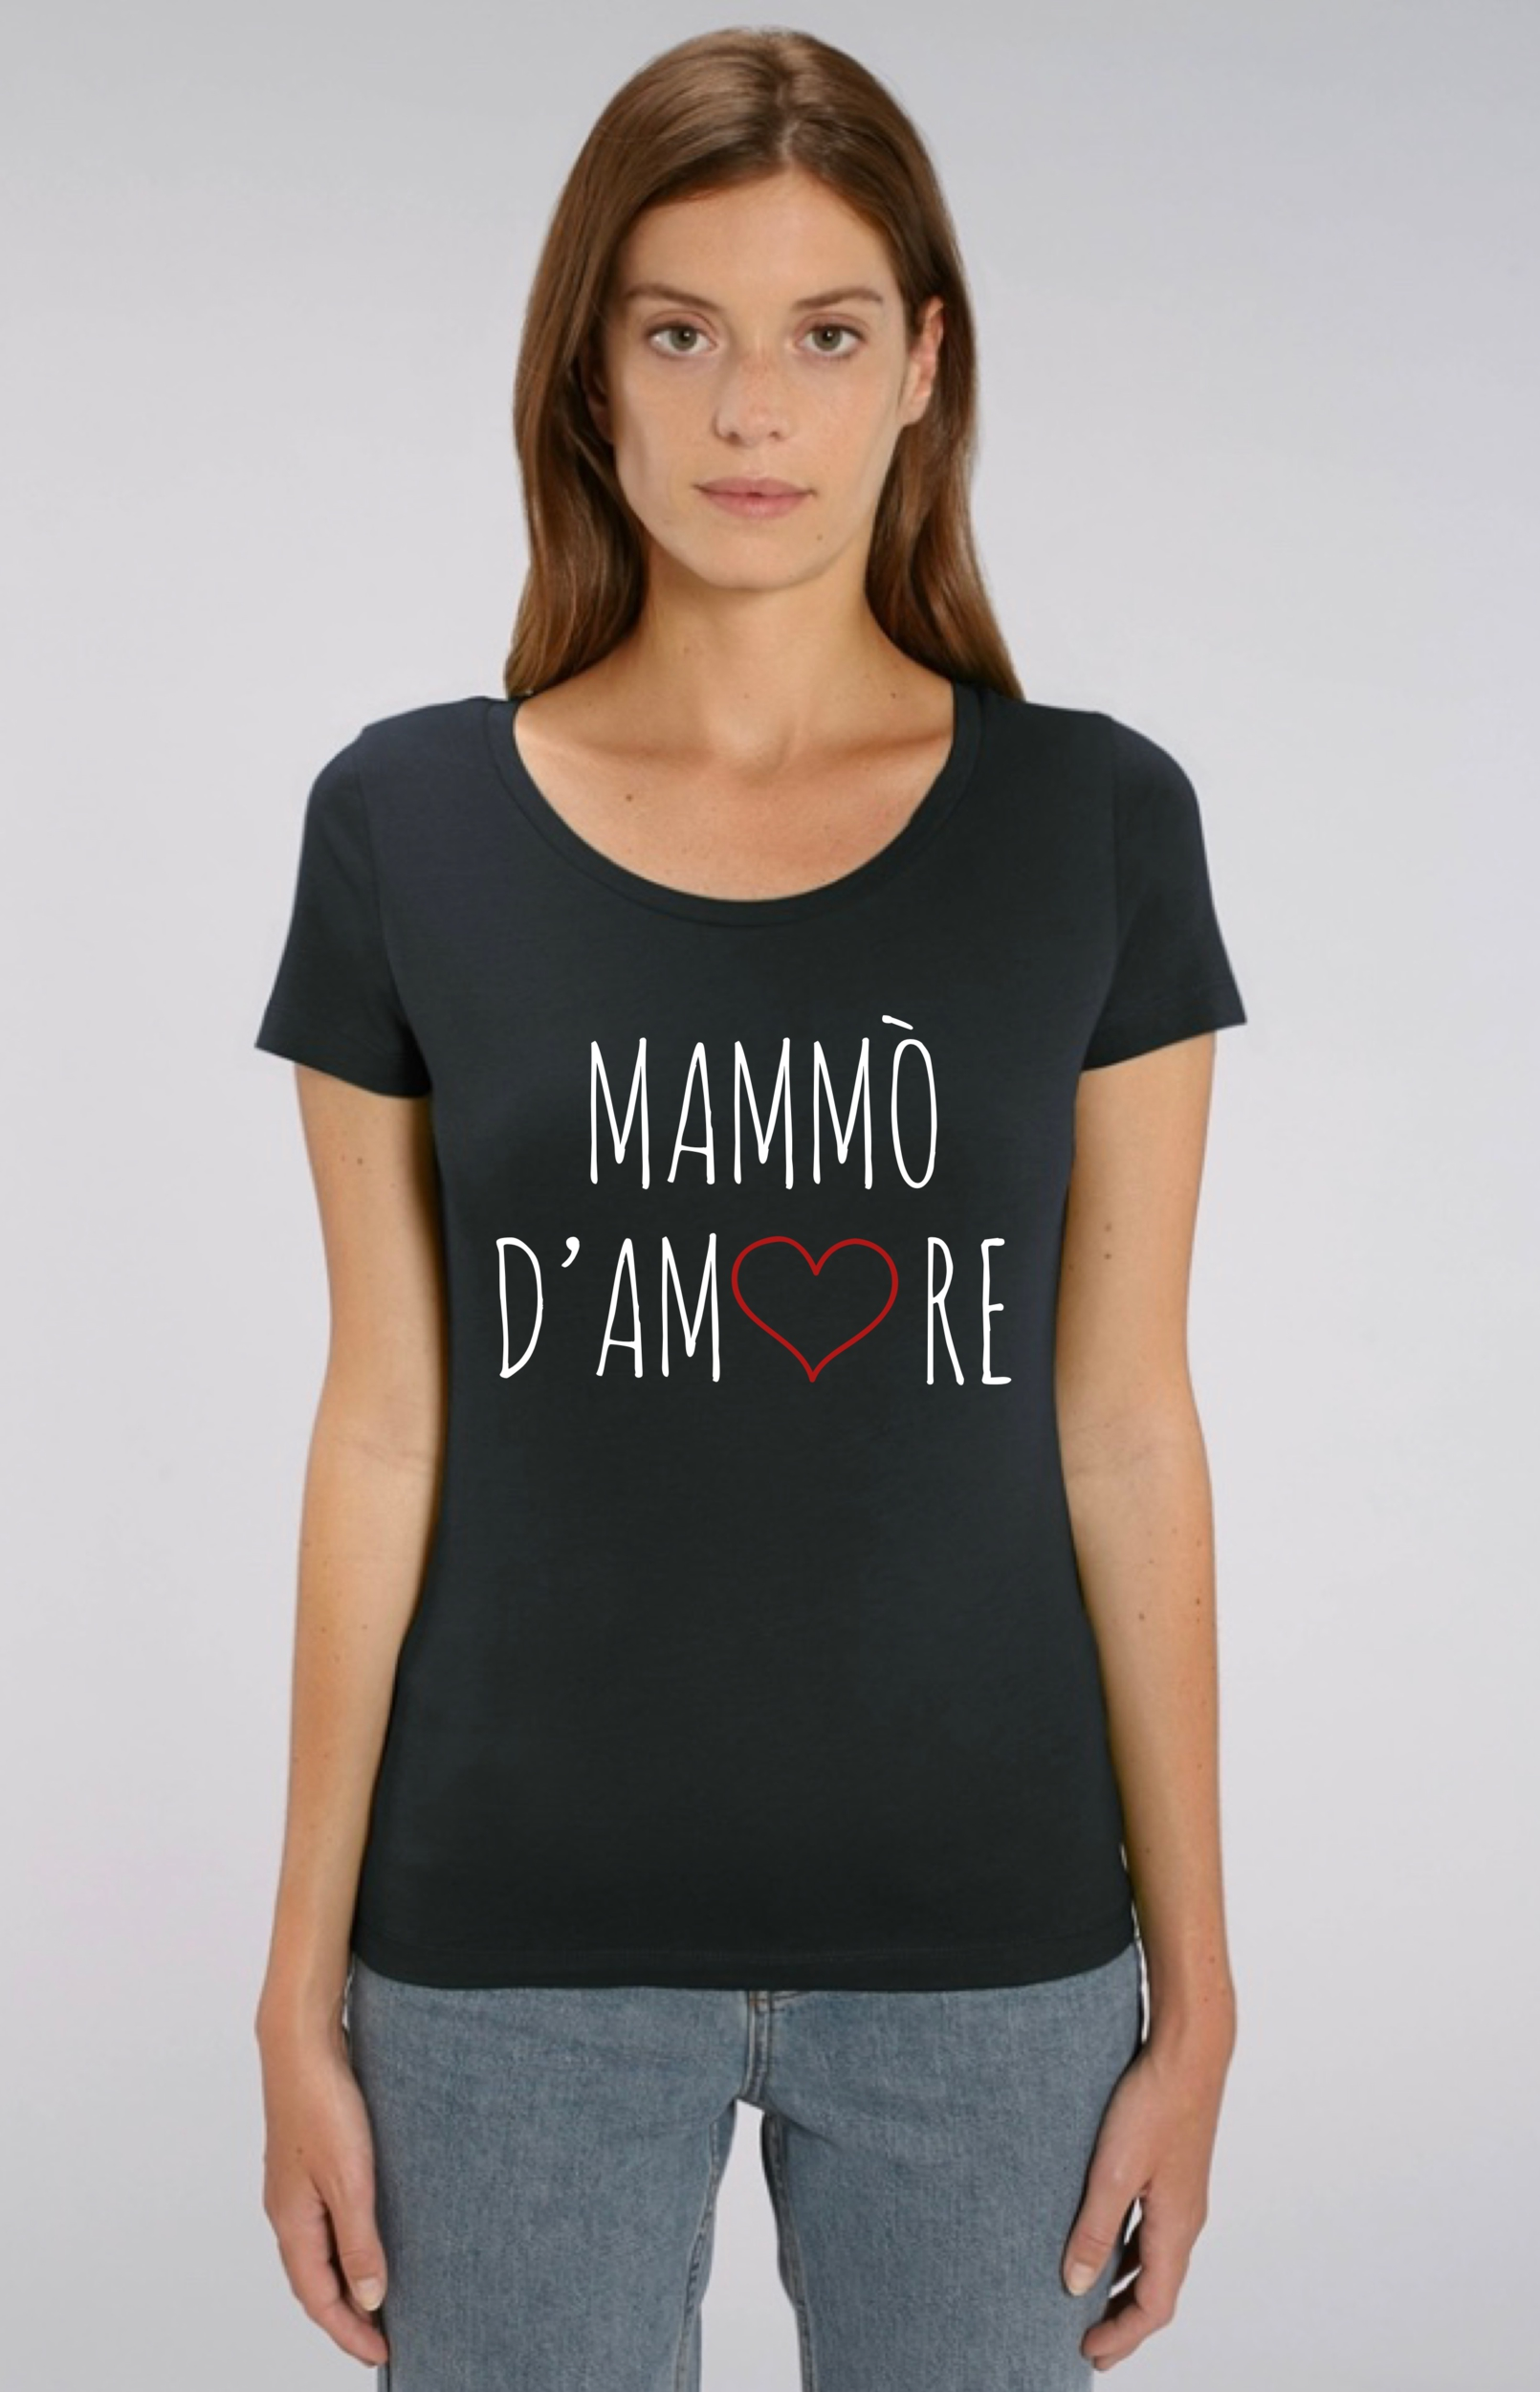 MAMMO D\'AMORE